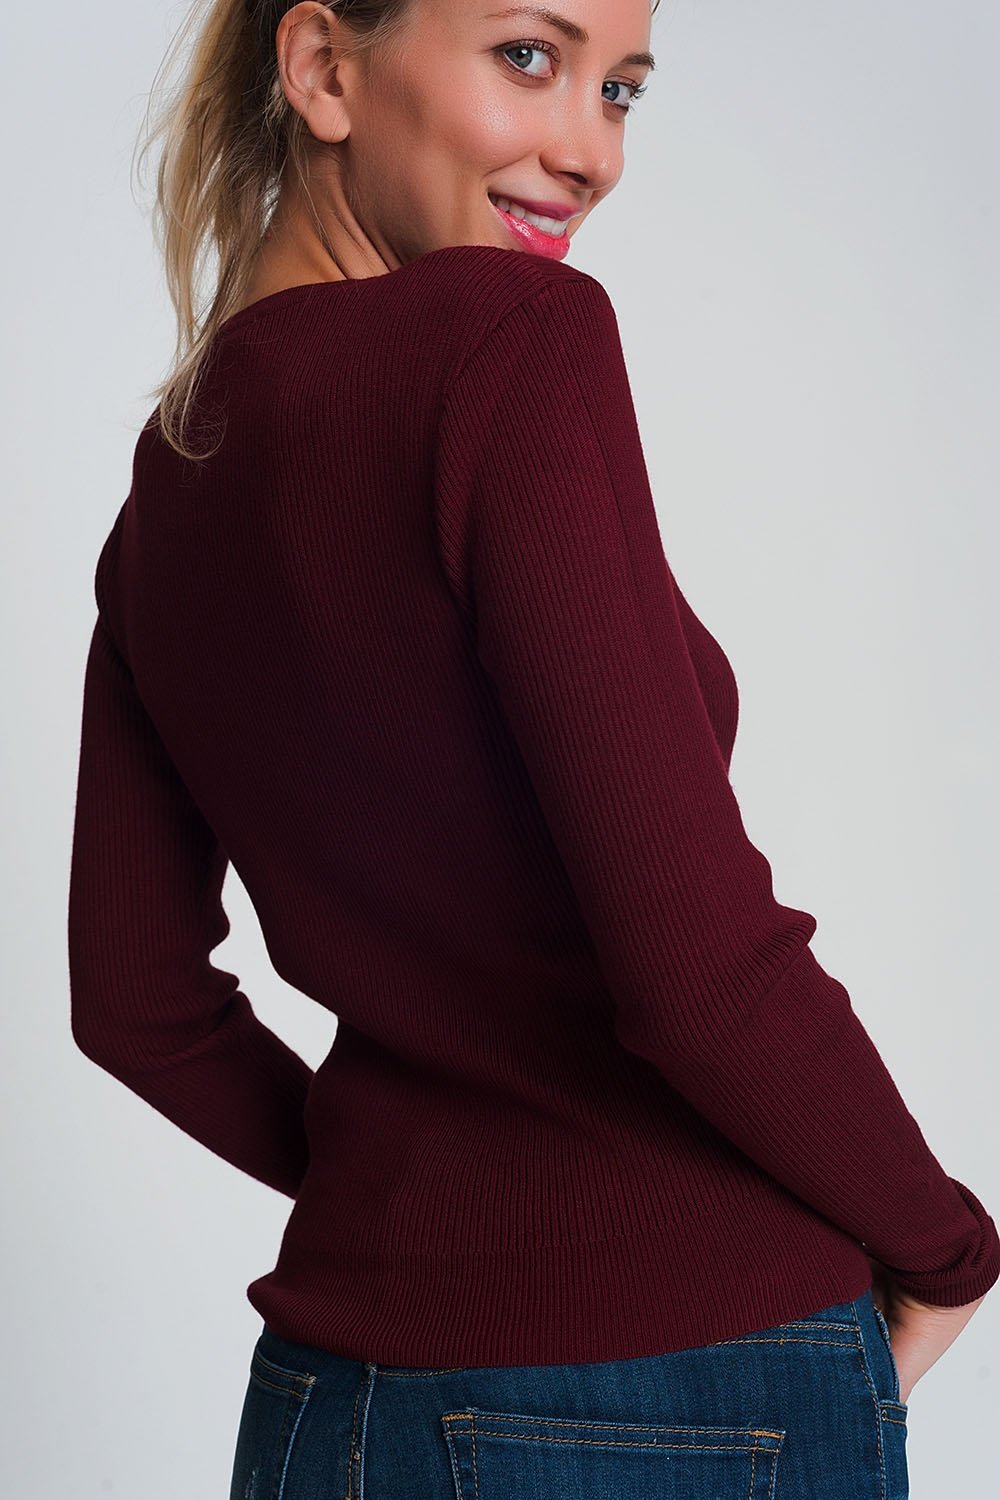 Fitted Jumper In Maroon Rib Knit Womens Fashion - Clothing Sweaters